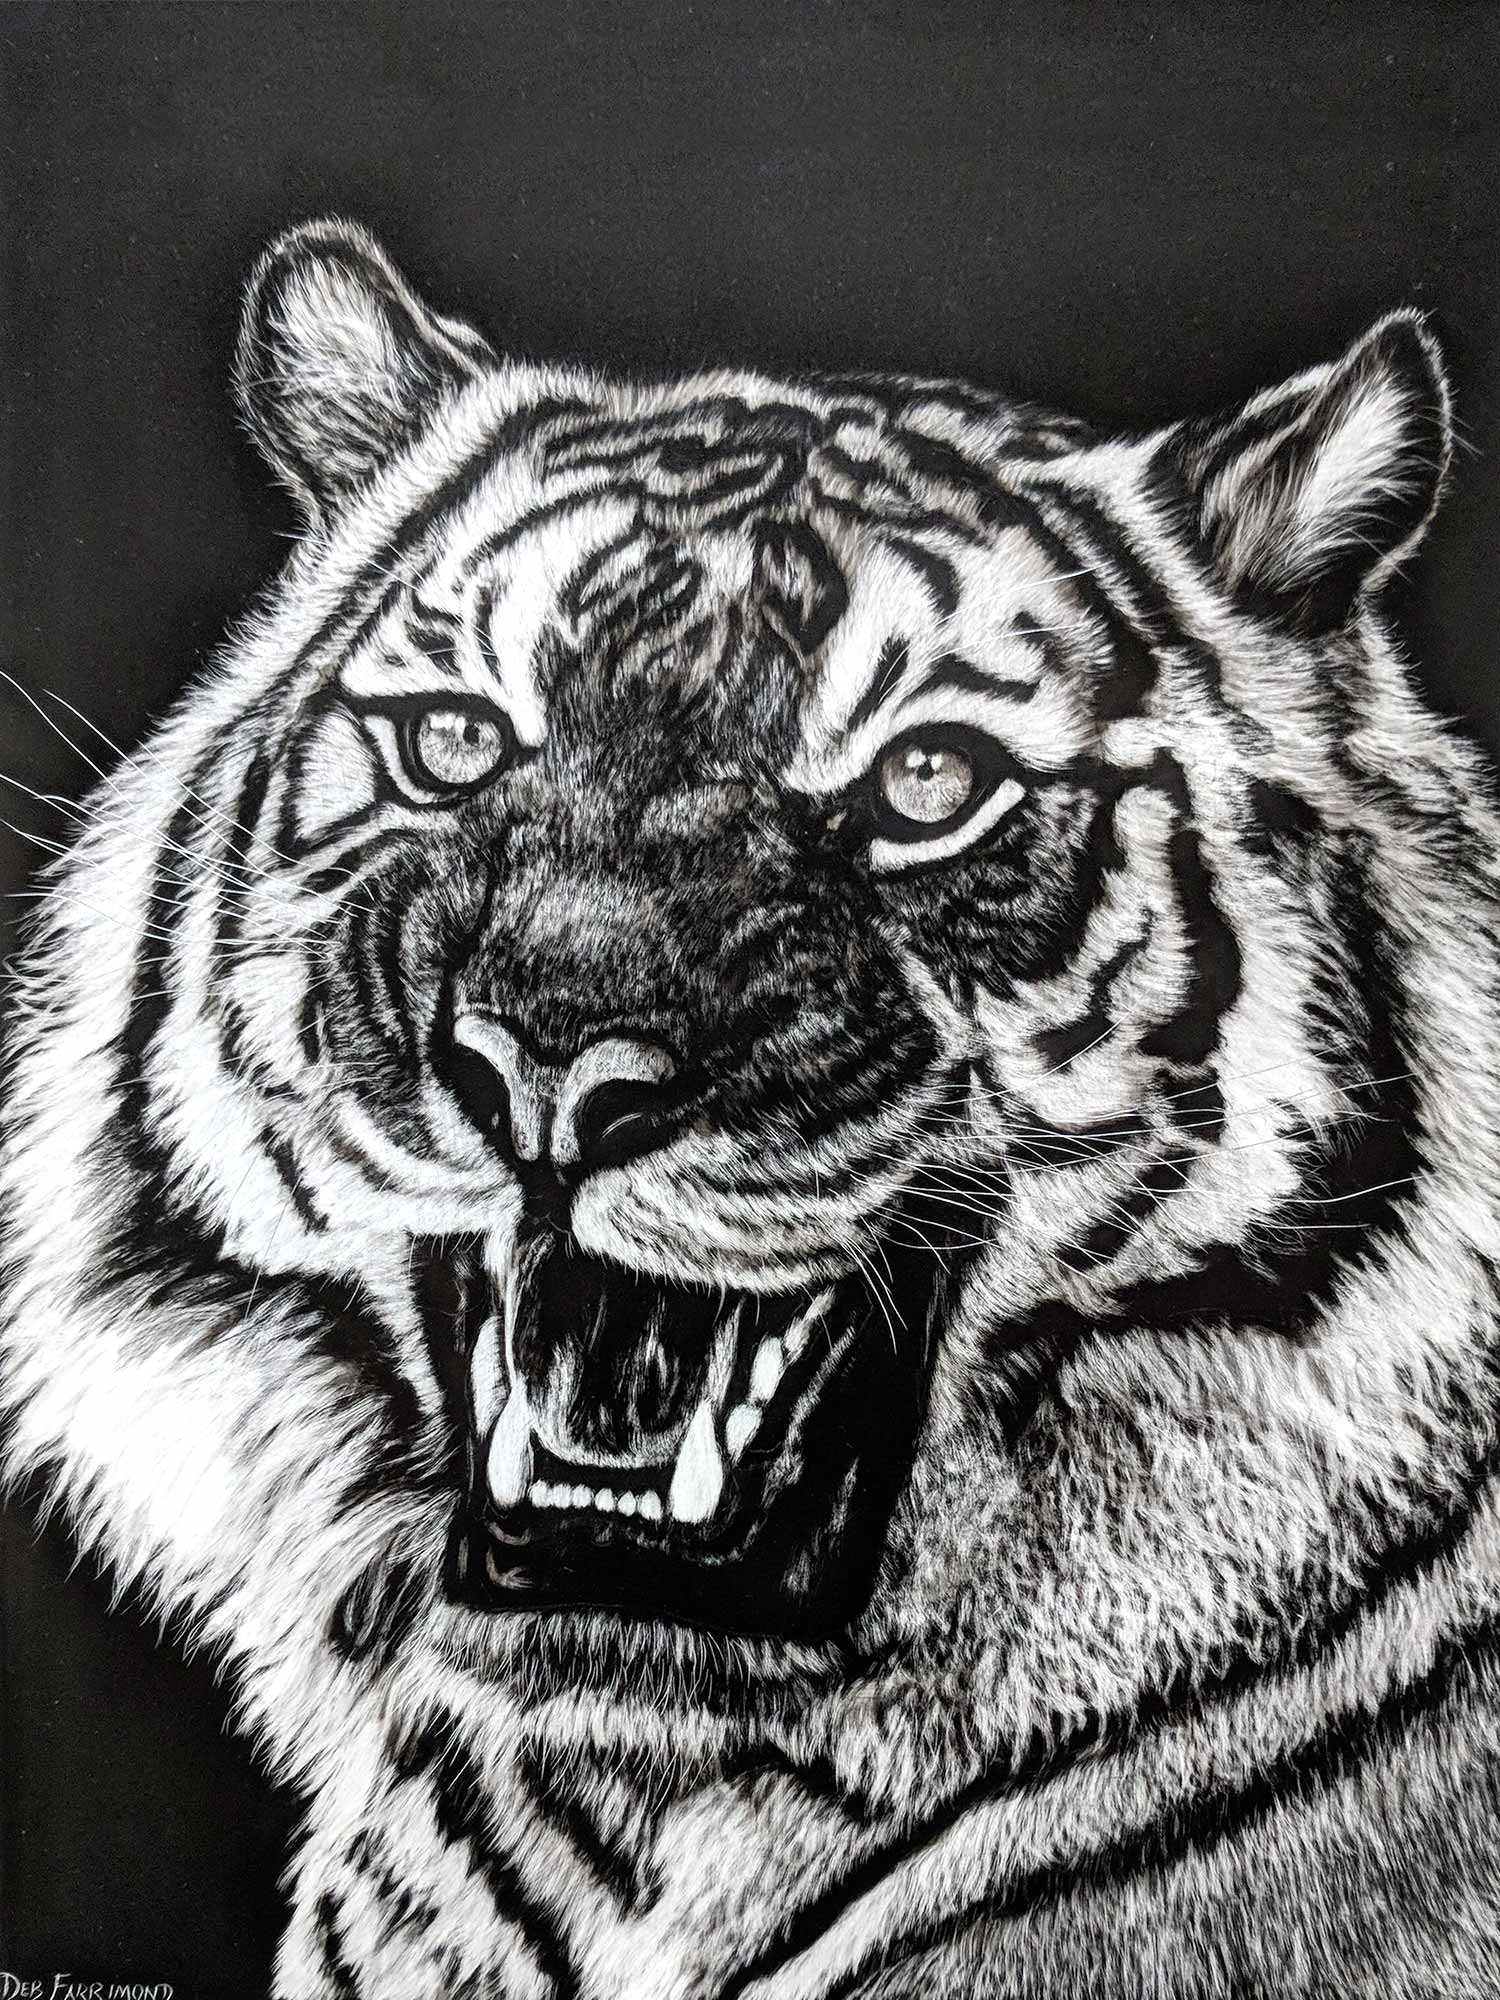 Tiger on Scratchboard